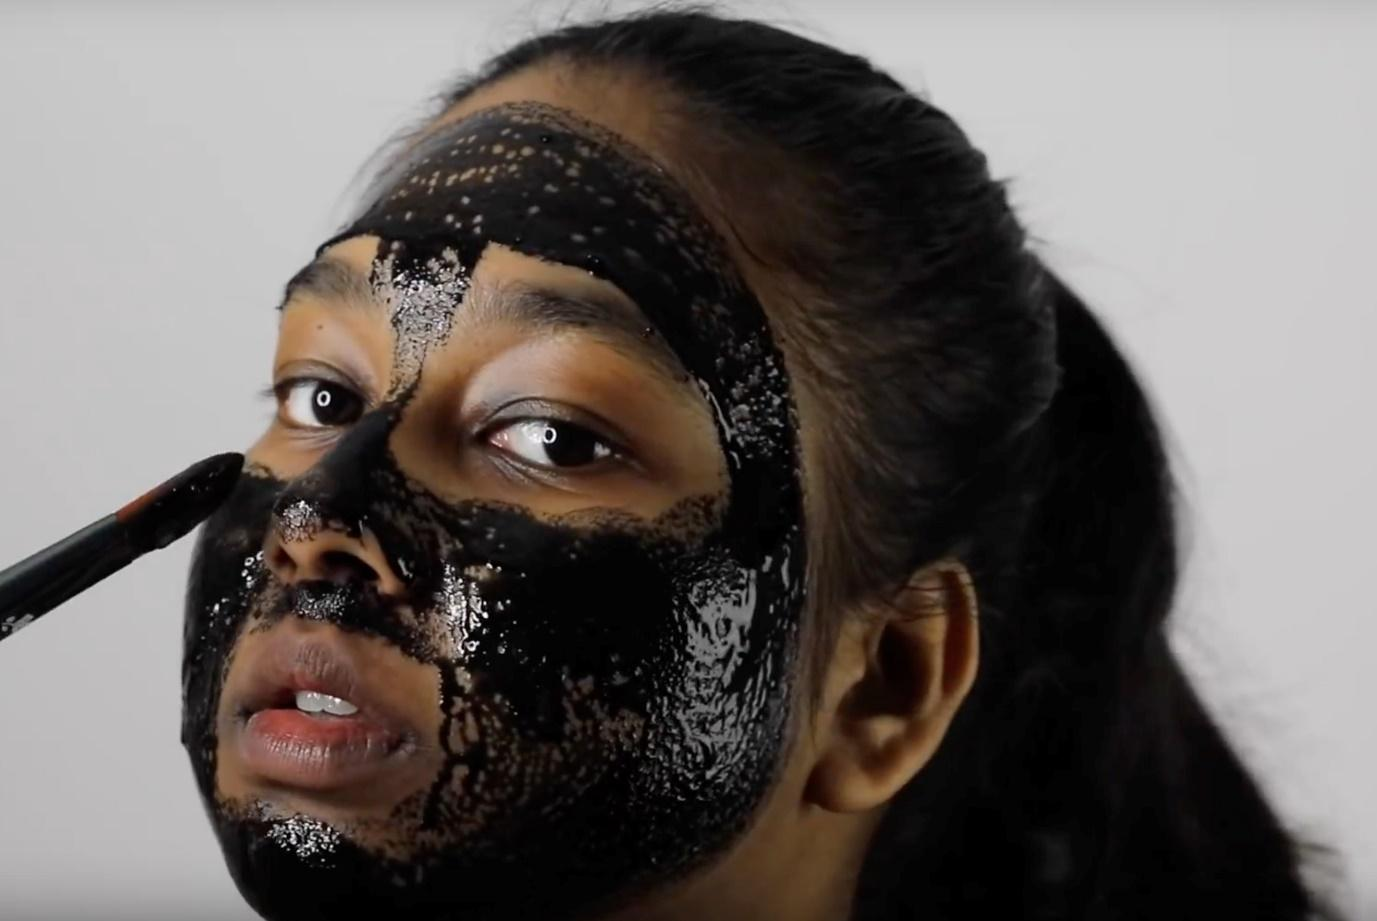 All Natural Charcoal DIY Face Mask to Remove Blackheads - Metiza